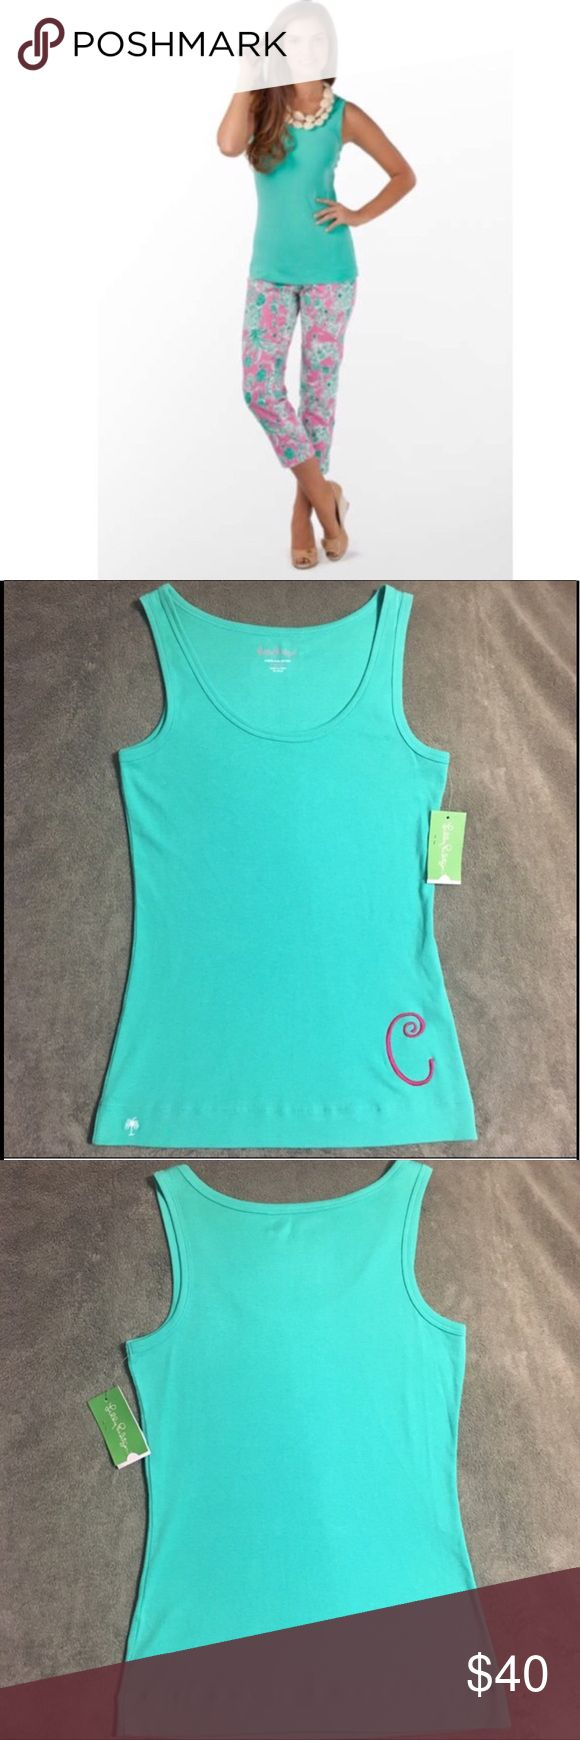 """NWT Lilly Pulitzer """"C"""" Monogrammed Heather Tank Lilly Pulitzer Monogrammed Heather Tank Top. Brand new with tags, never worn, but the price was removed from the tag. Lagoon green color with an embroidered pink """"C."""" This is the perfect gift for any Lilly lover with the initial C! Stock photo does not show the monogram. Lilly Pulitzer Tops Tank Tops"""